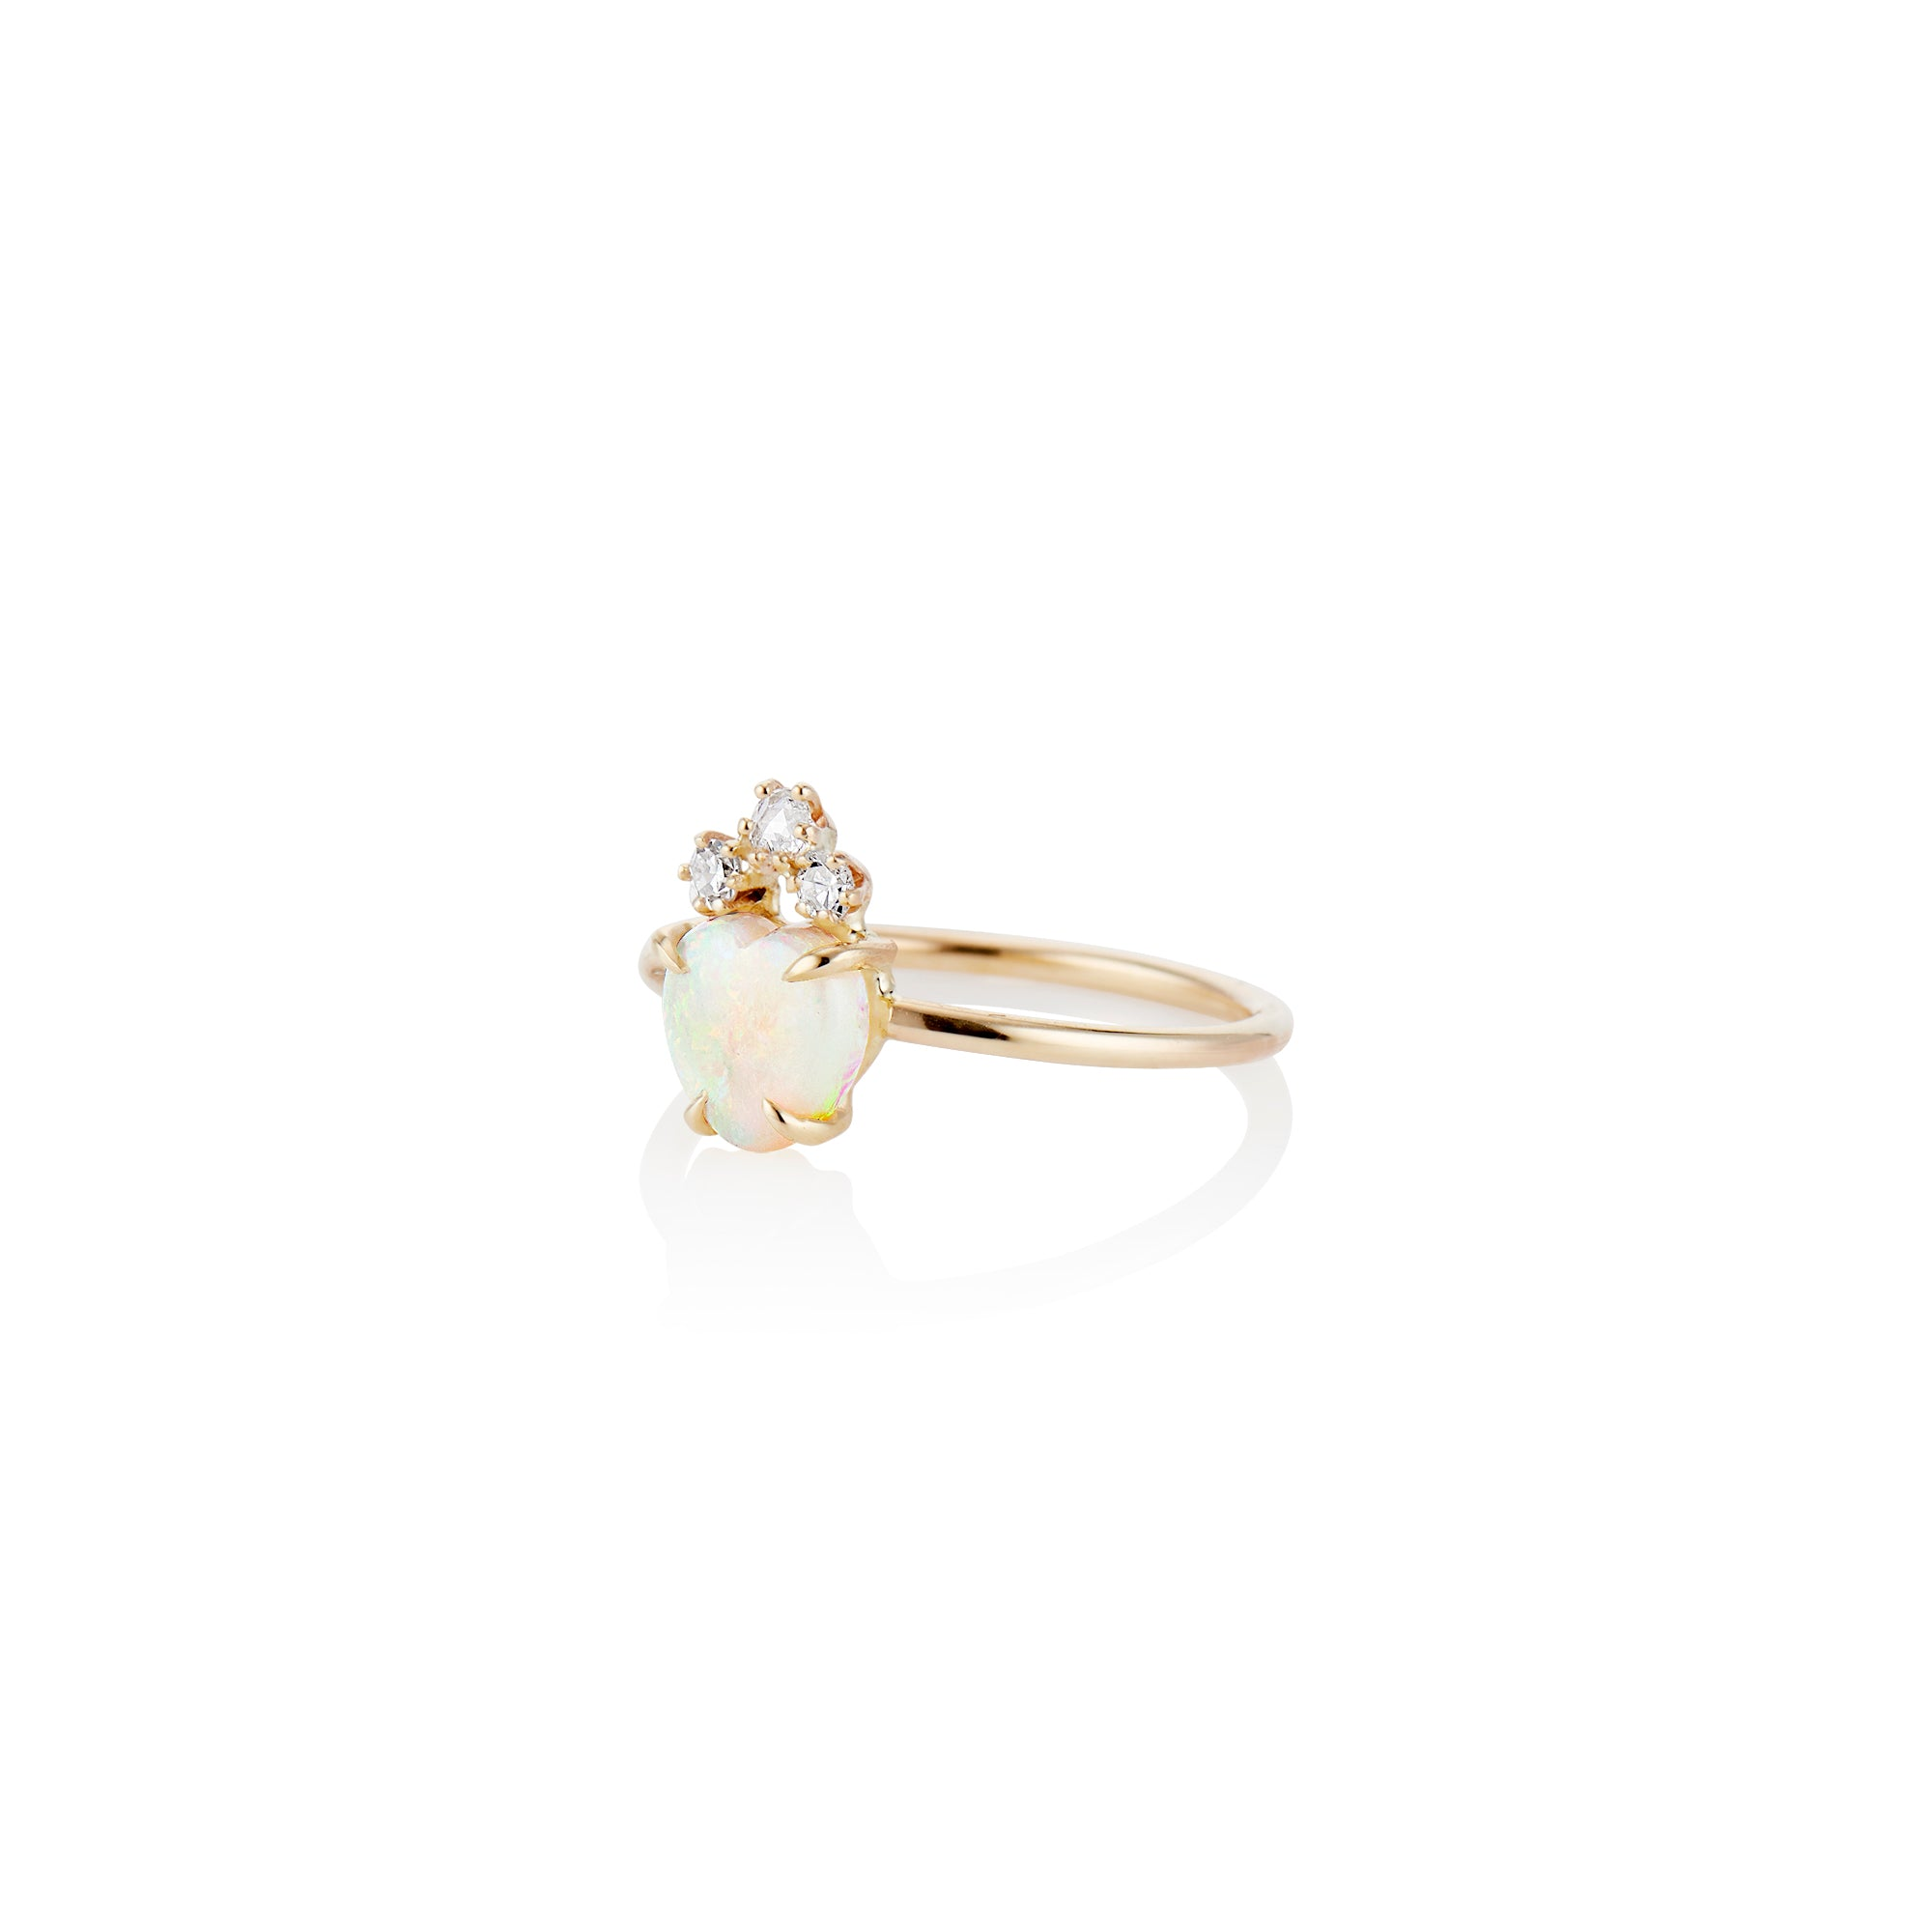 Tiny Crowned Heart Ring - Charlie and Marcelle